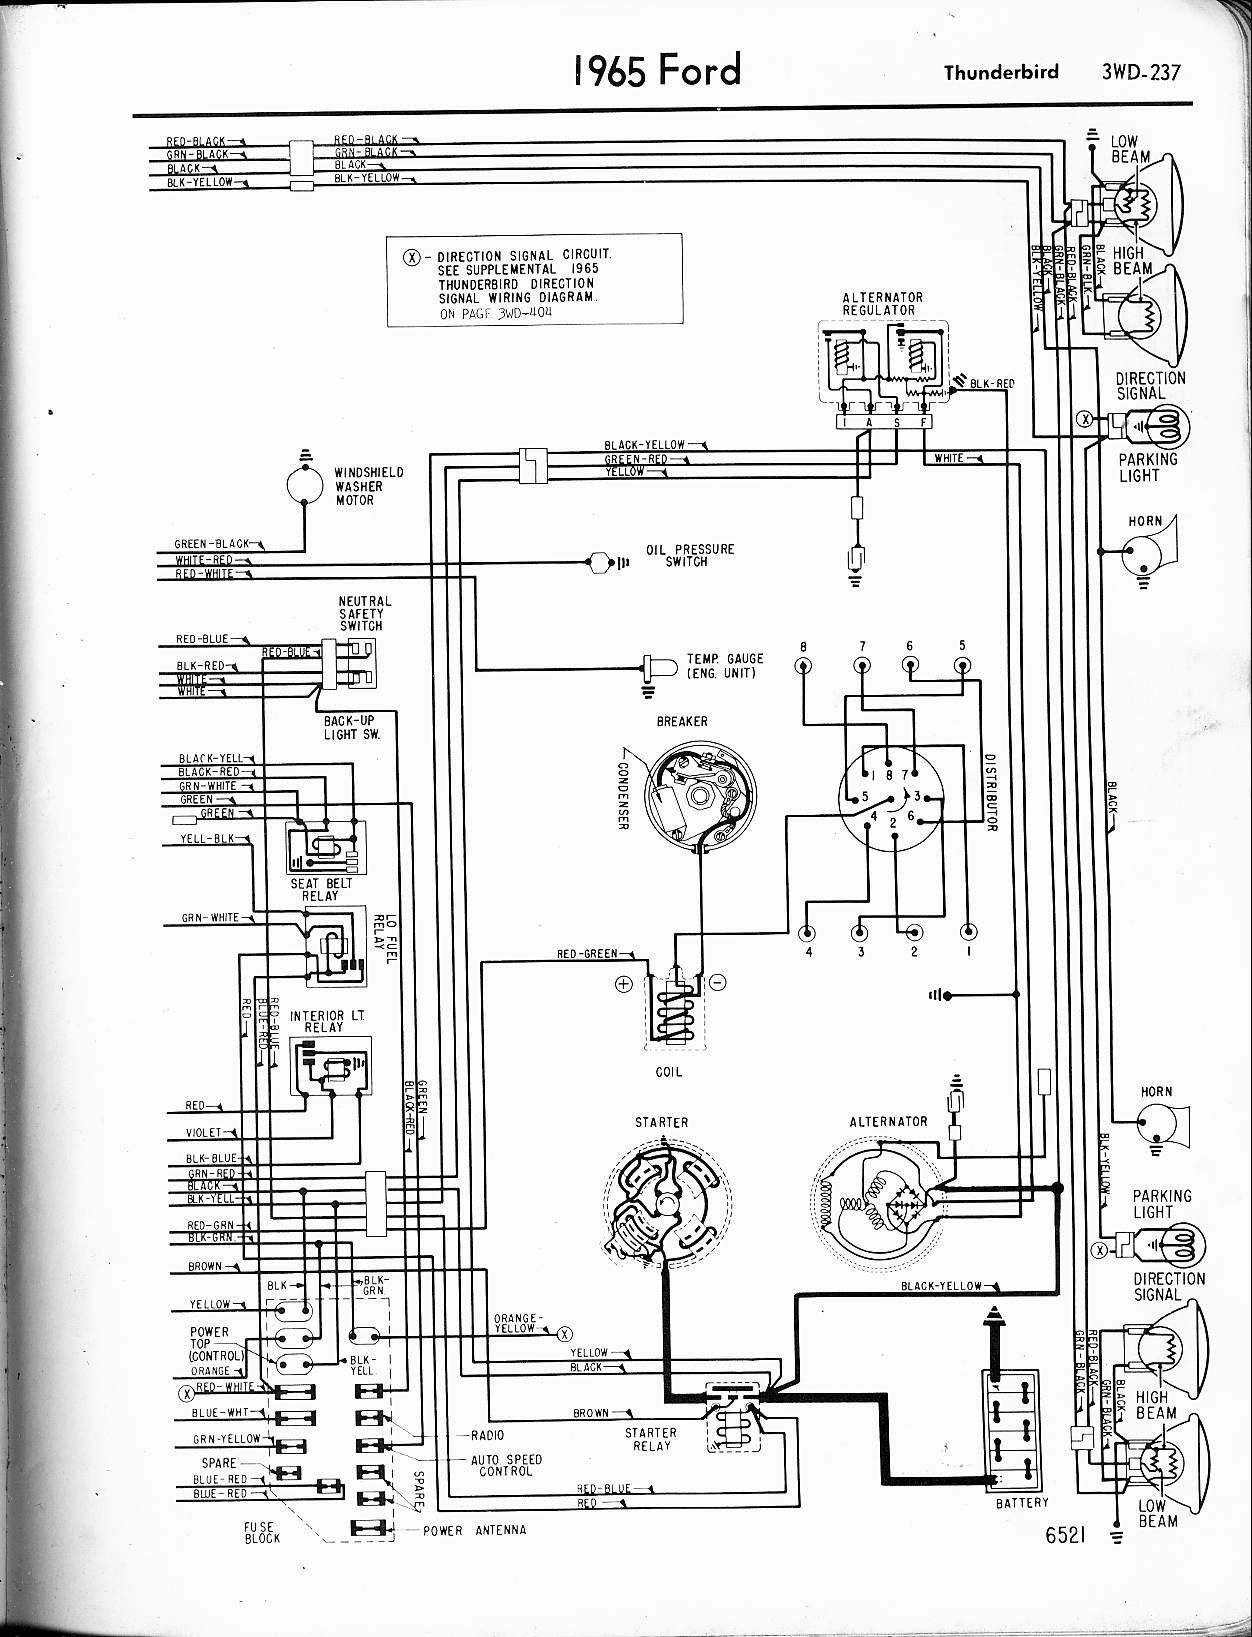 Wiring 69courtesycargo For 1969 Ford F100 Wiring Diagram Ford Truck Diagram 1969 Ford F100